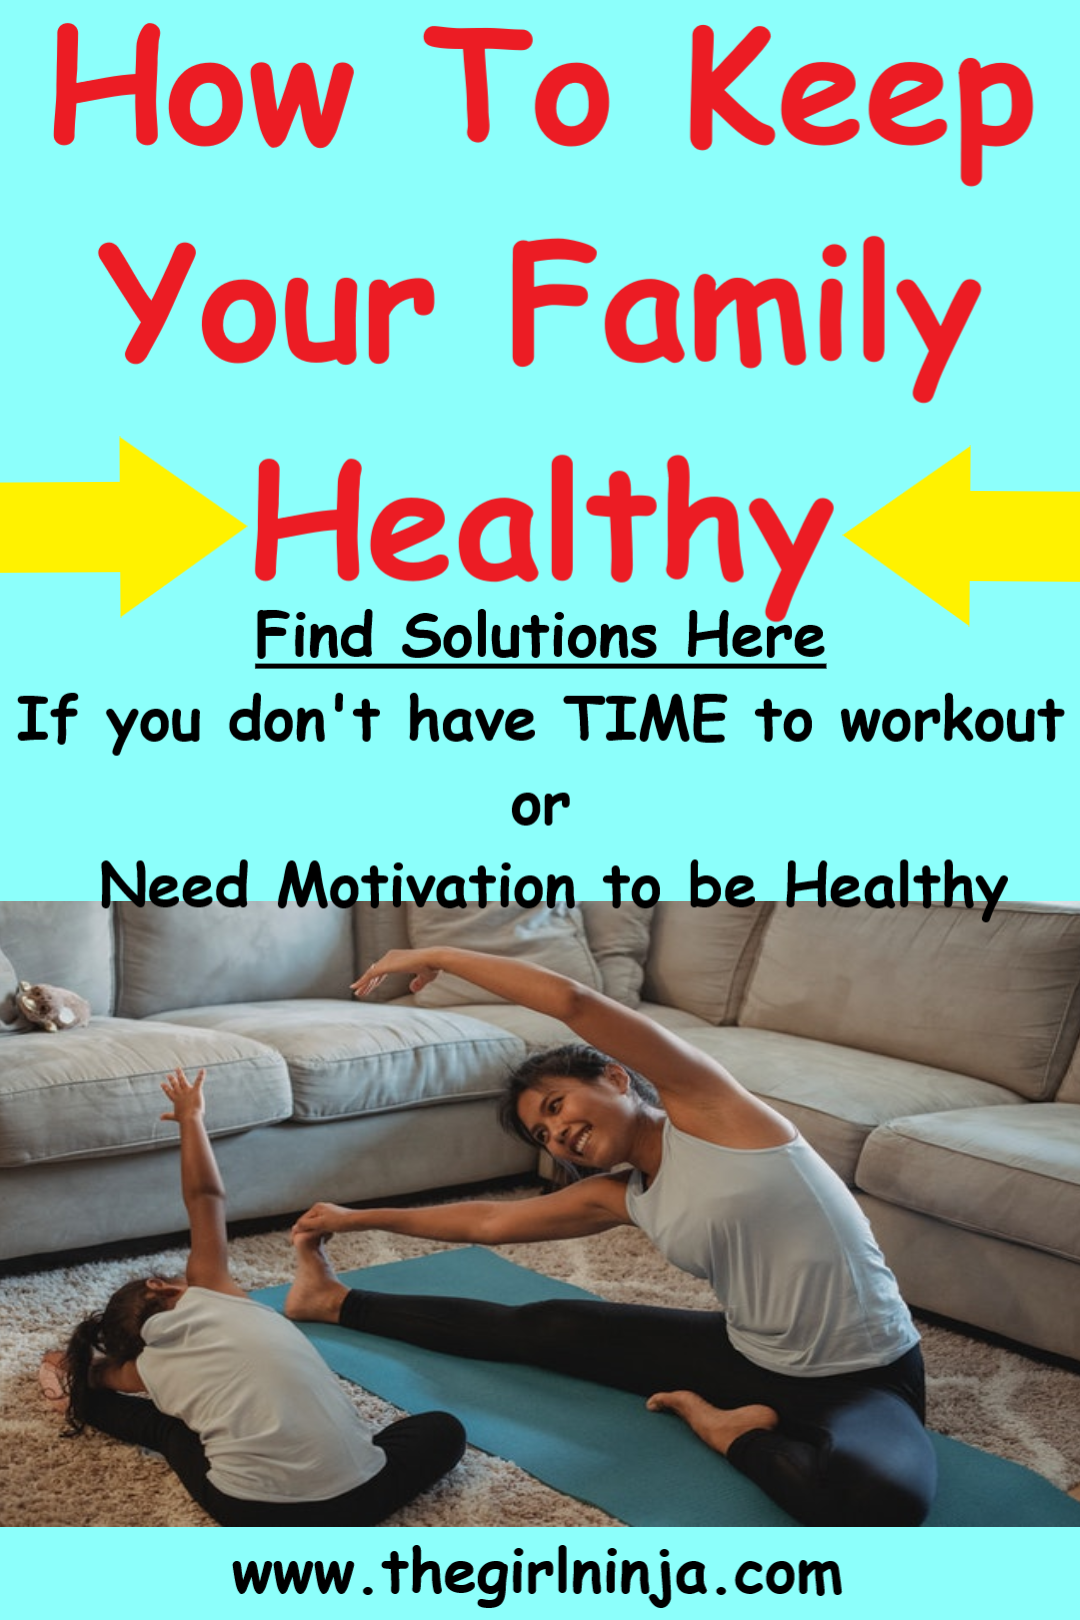 Light blue rectangle with red text at top that reads How To Keep Your Family Healthy Find Solutions Here If your don't have TIME to workout or Need Motivation to be Healthy. Below text is image of woman on yoga mat in front of couch stretching with little girl stretching next to her. Below woman and girl black text at bottom center of rectangle reads www.thegirlninja.com